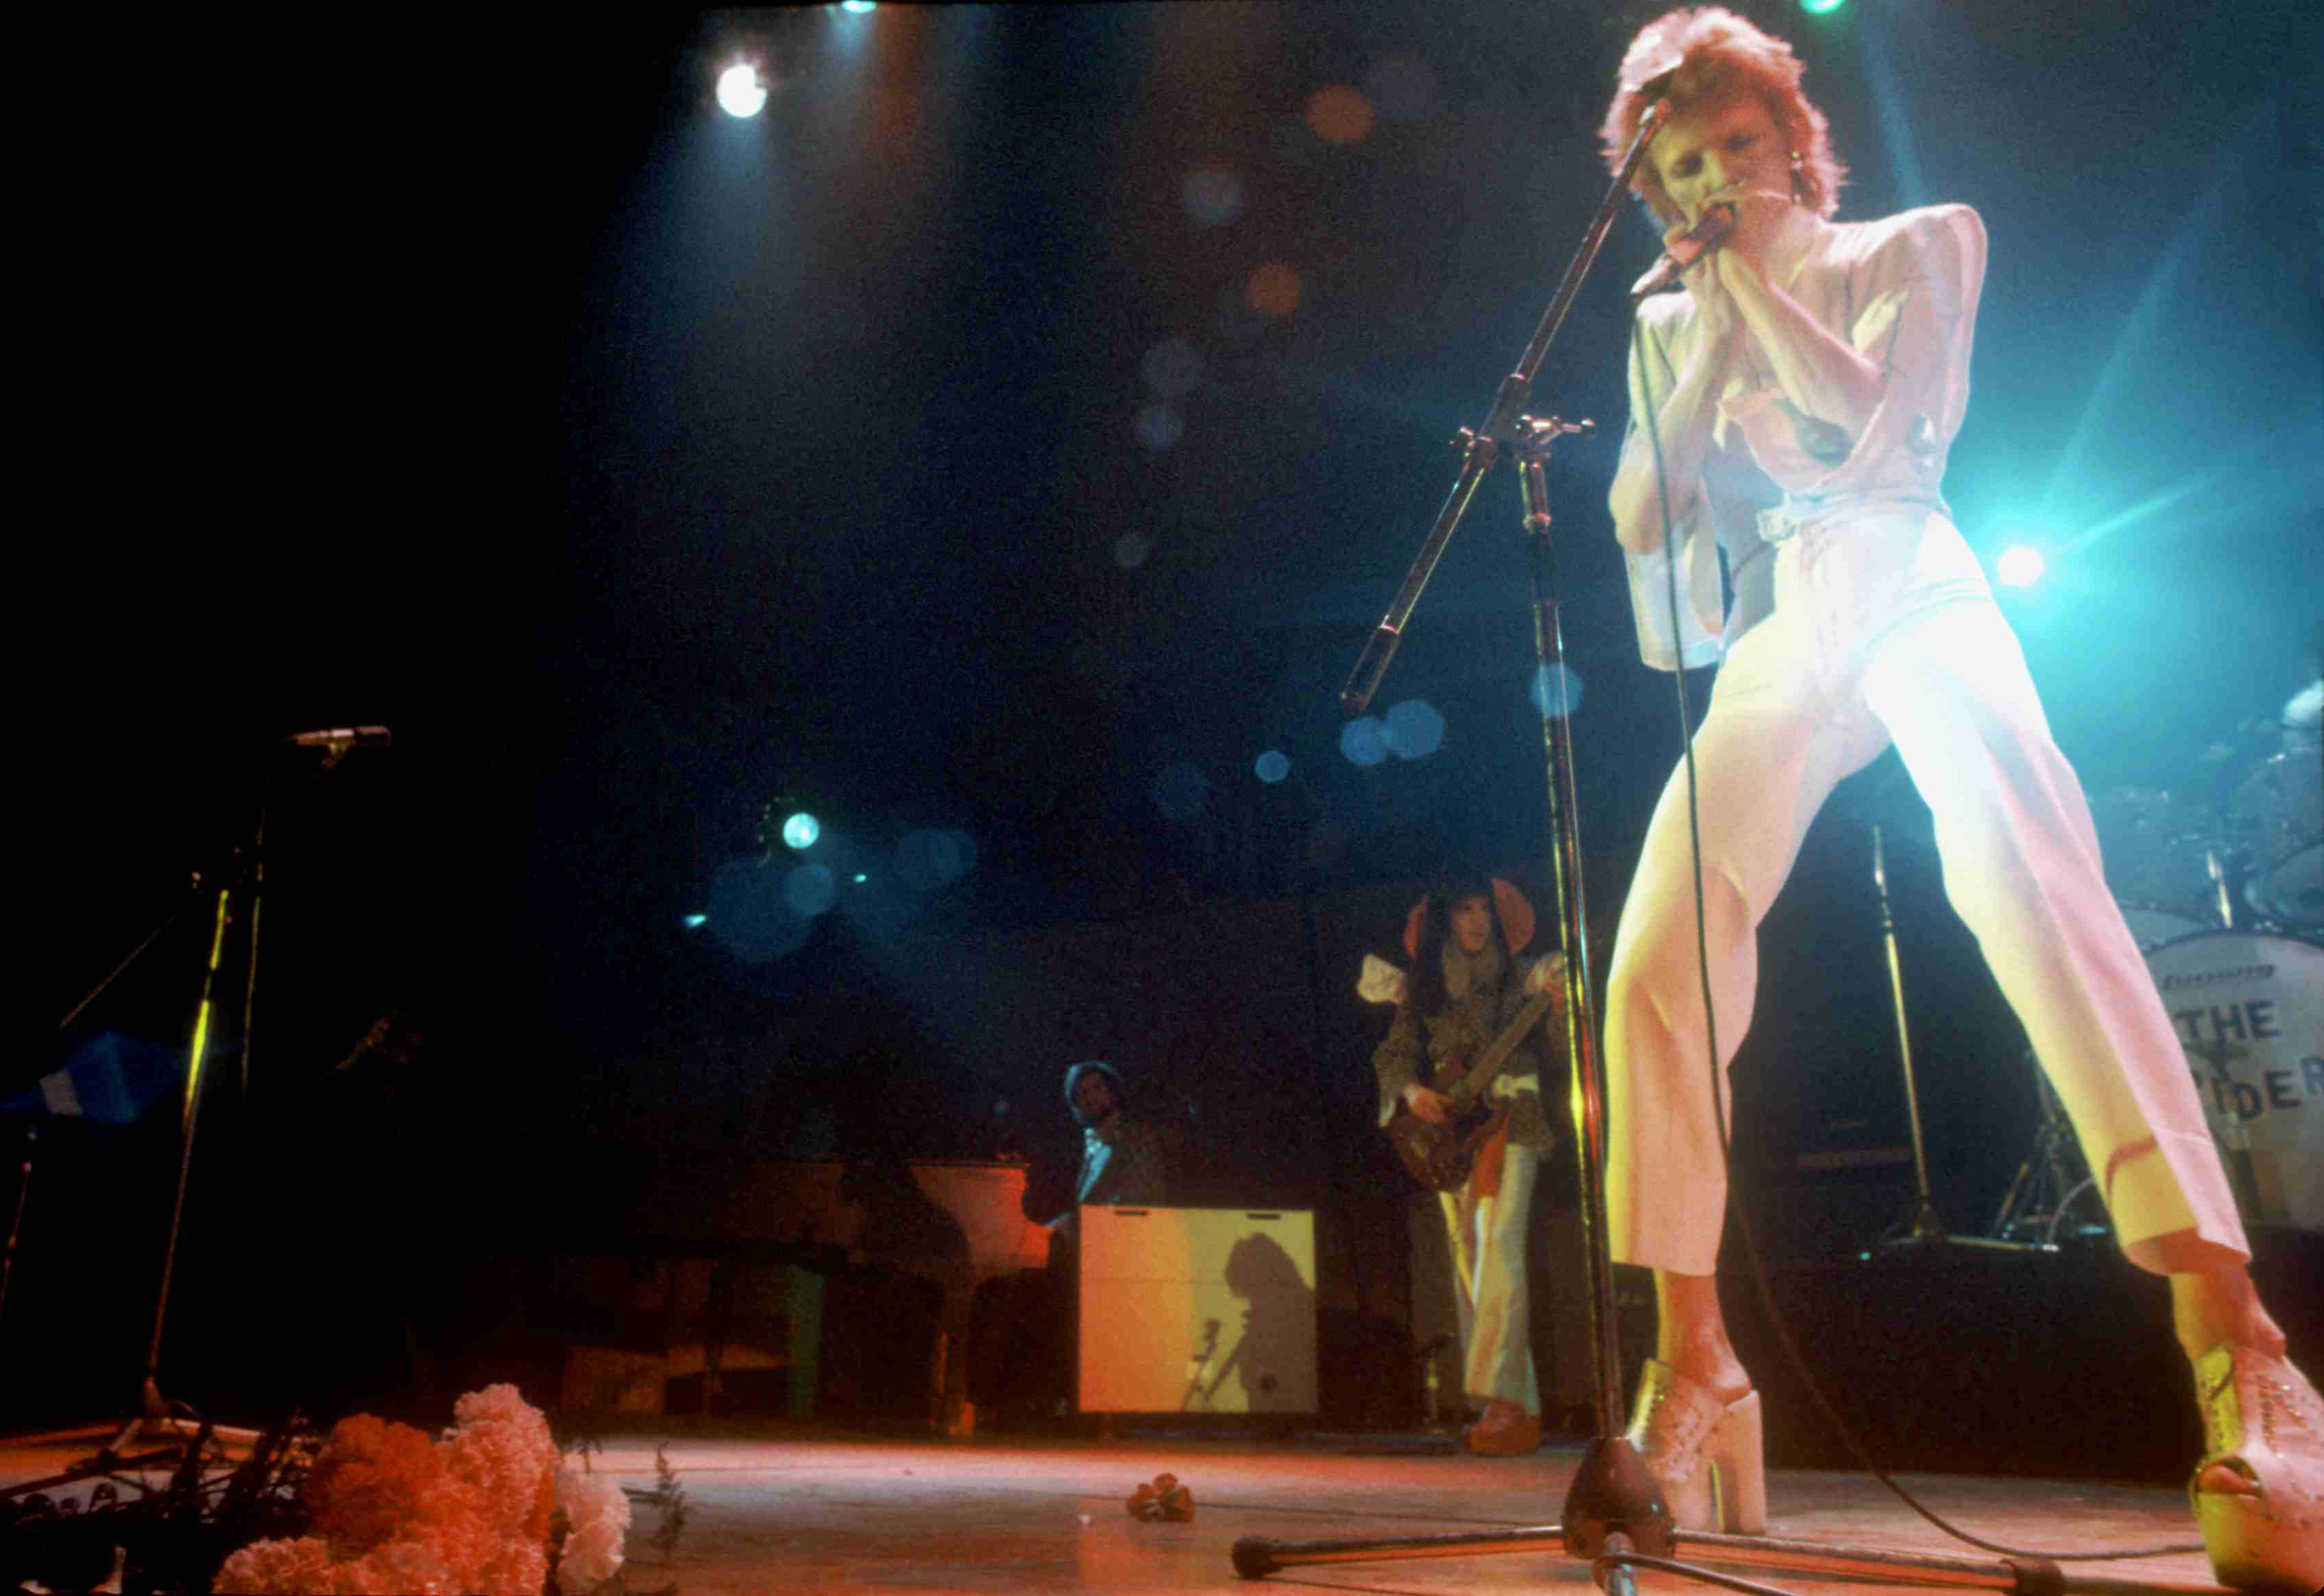 David Bowie singing on stage.